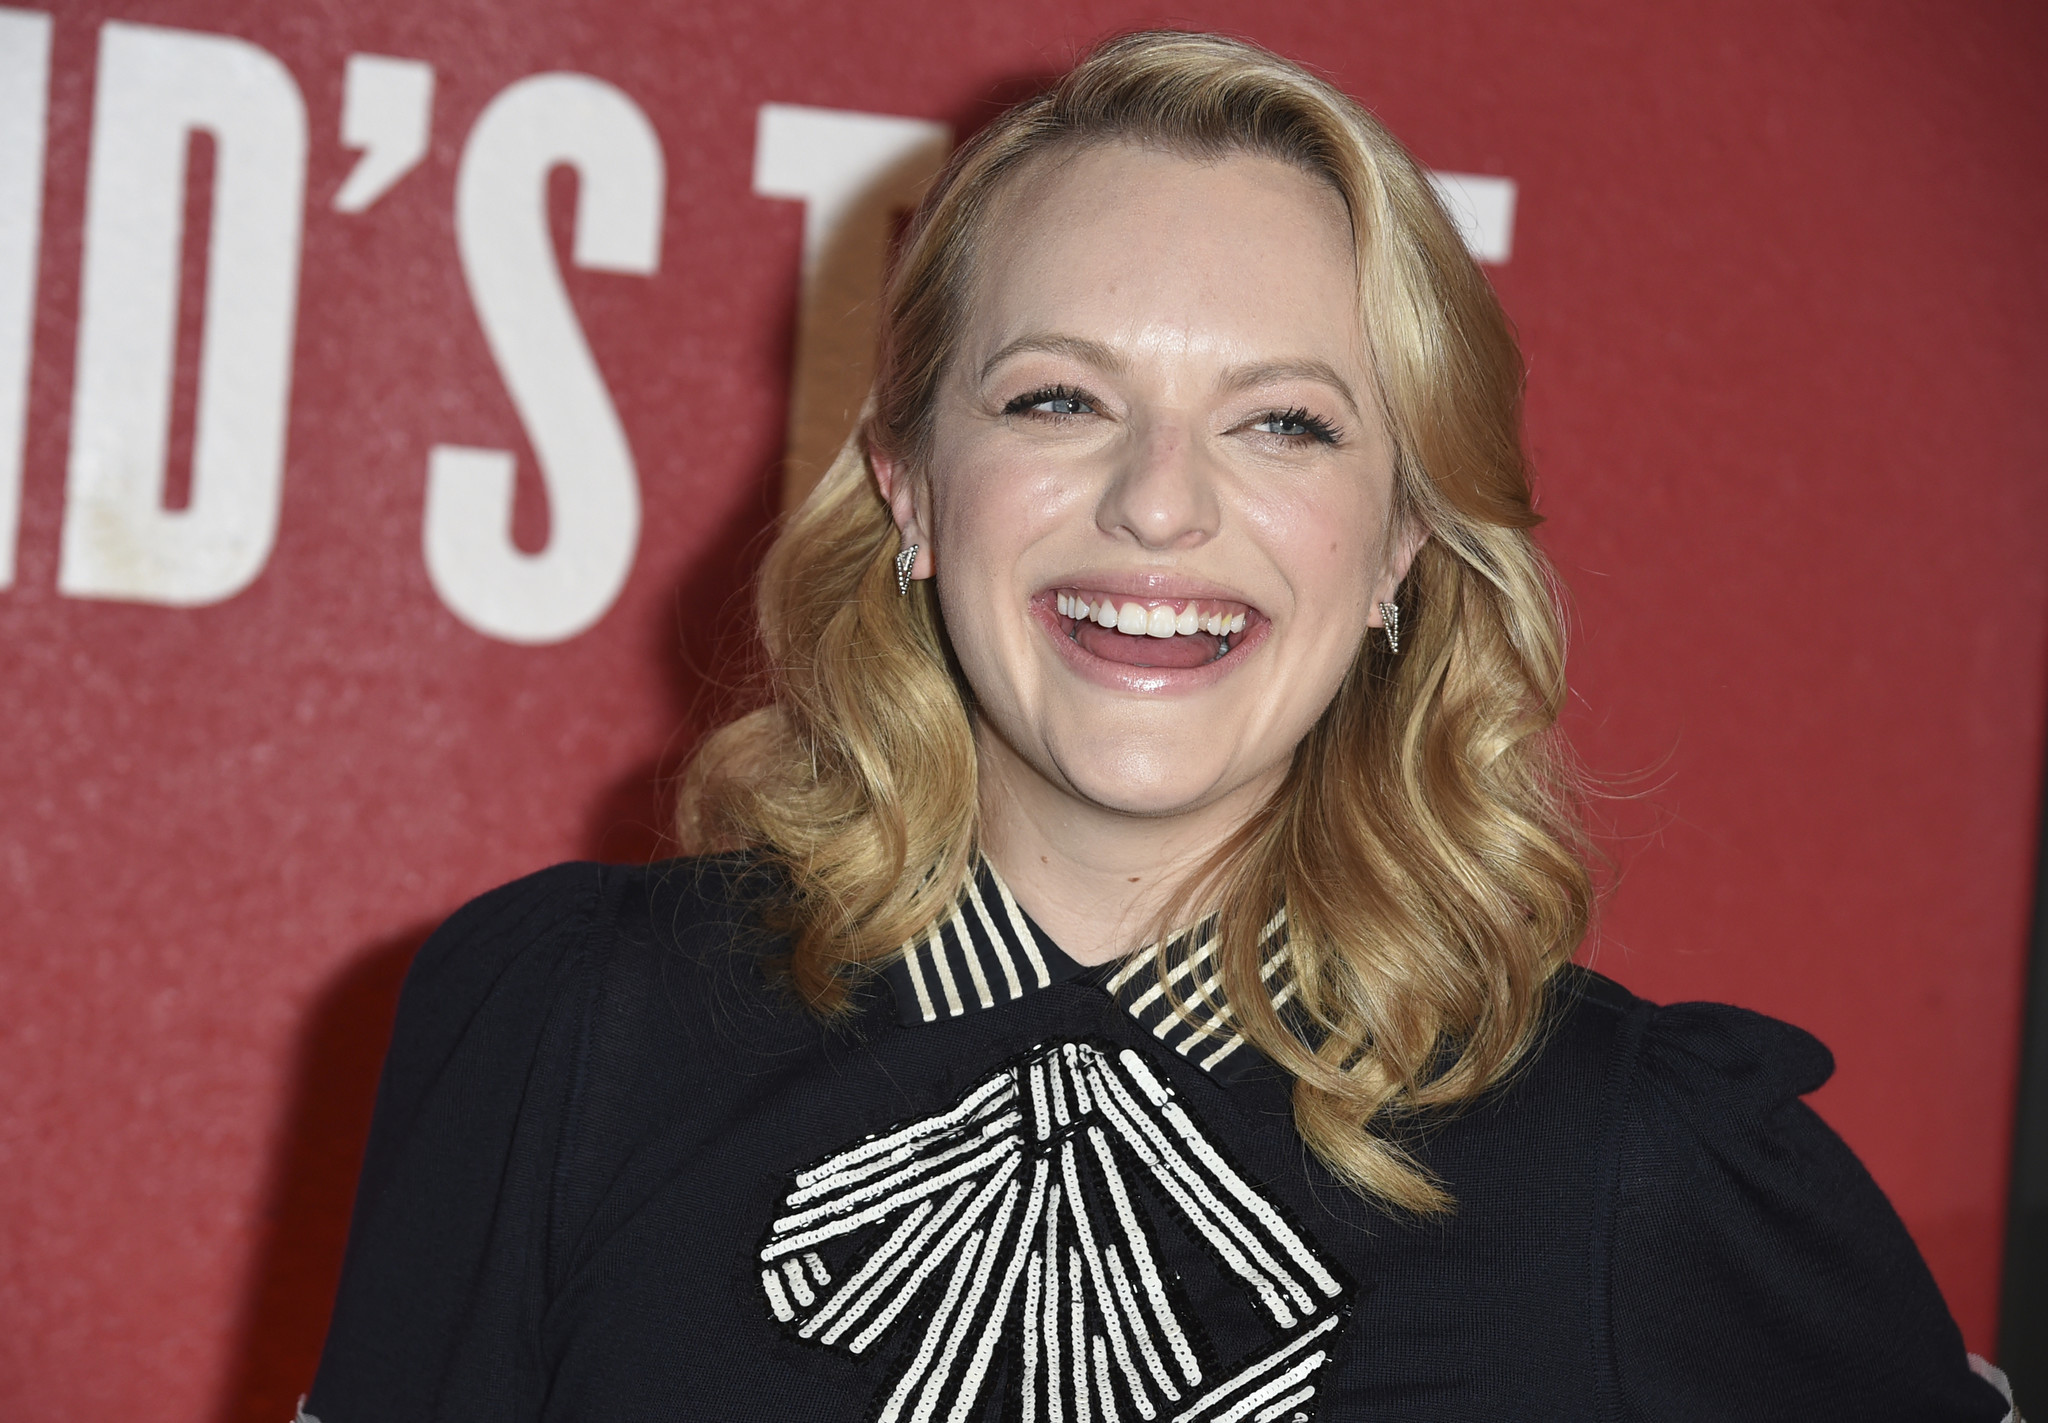 Elisabeth Moss defends Scientology after fan compares it to Gilead